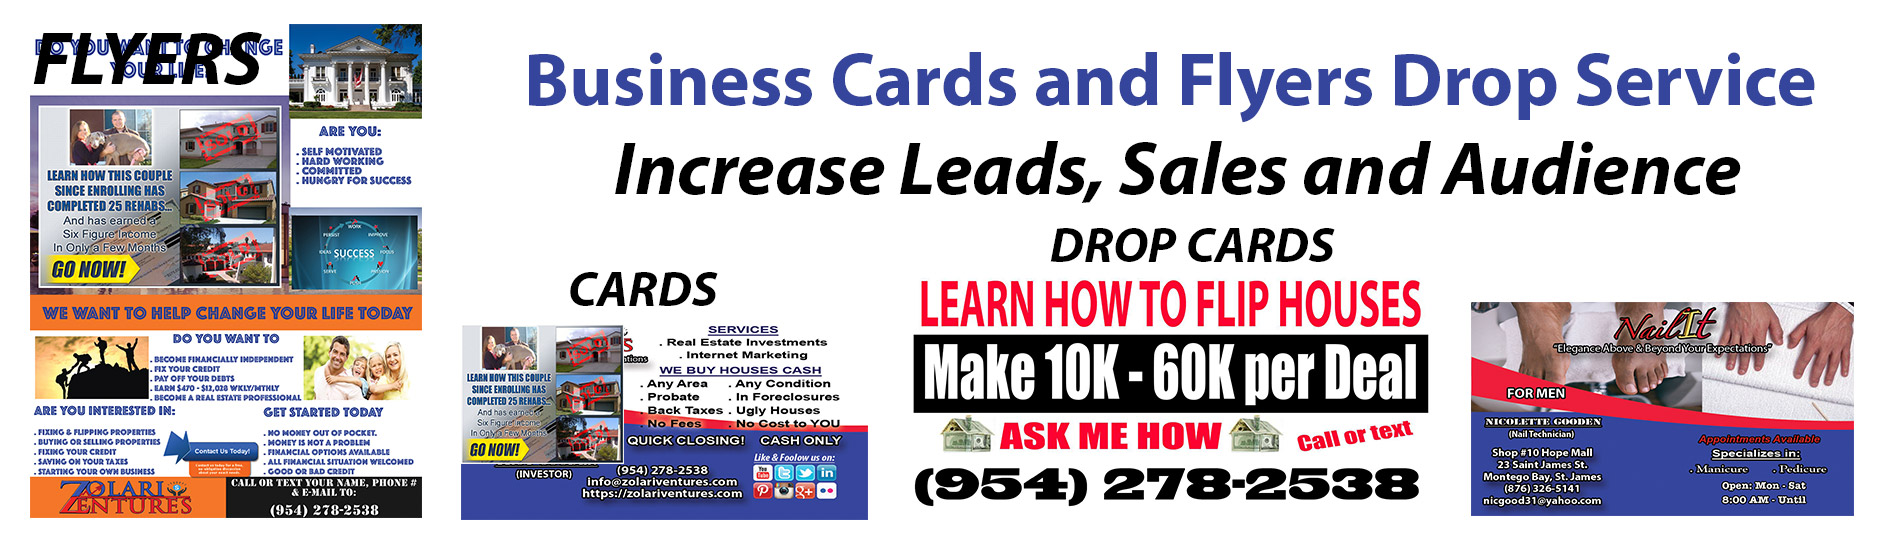 Business Cards and Flyers Drop Service